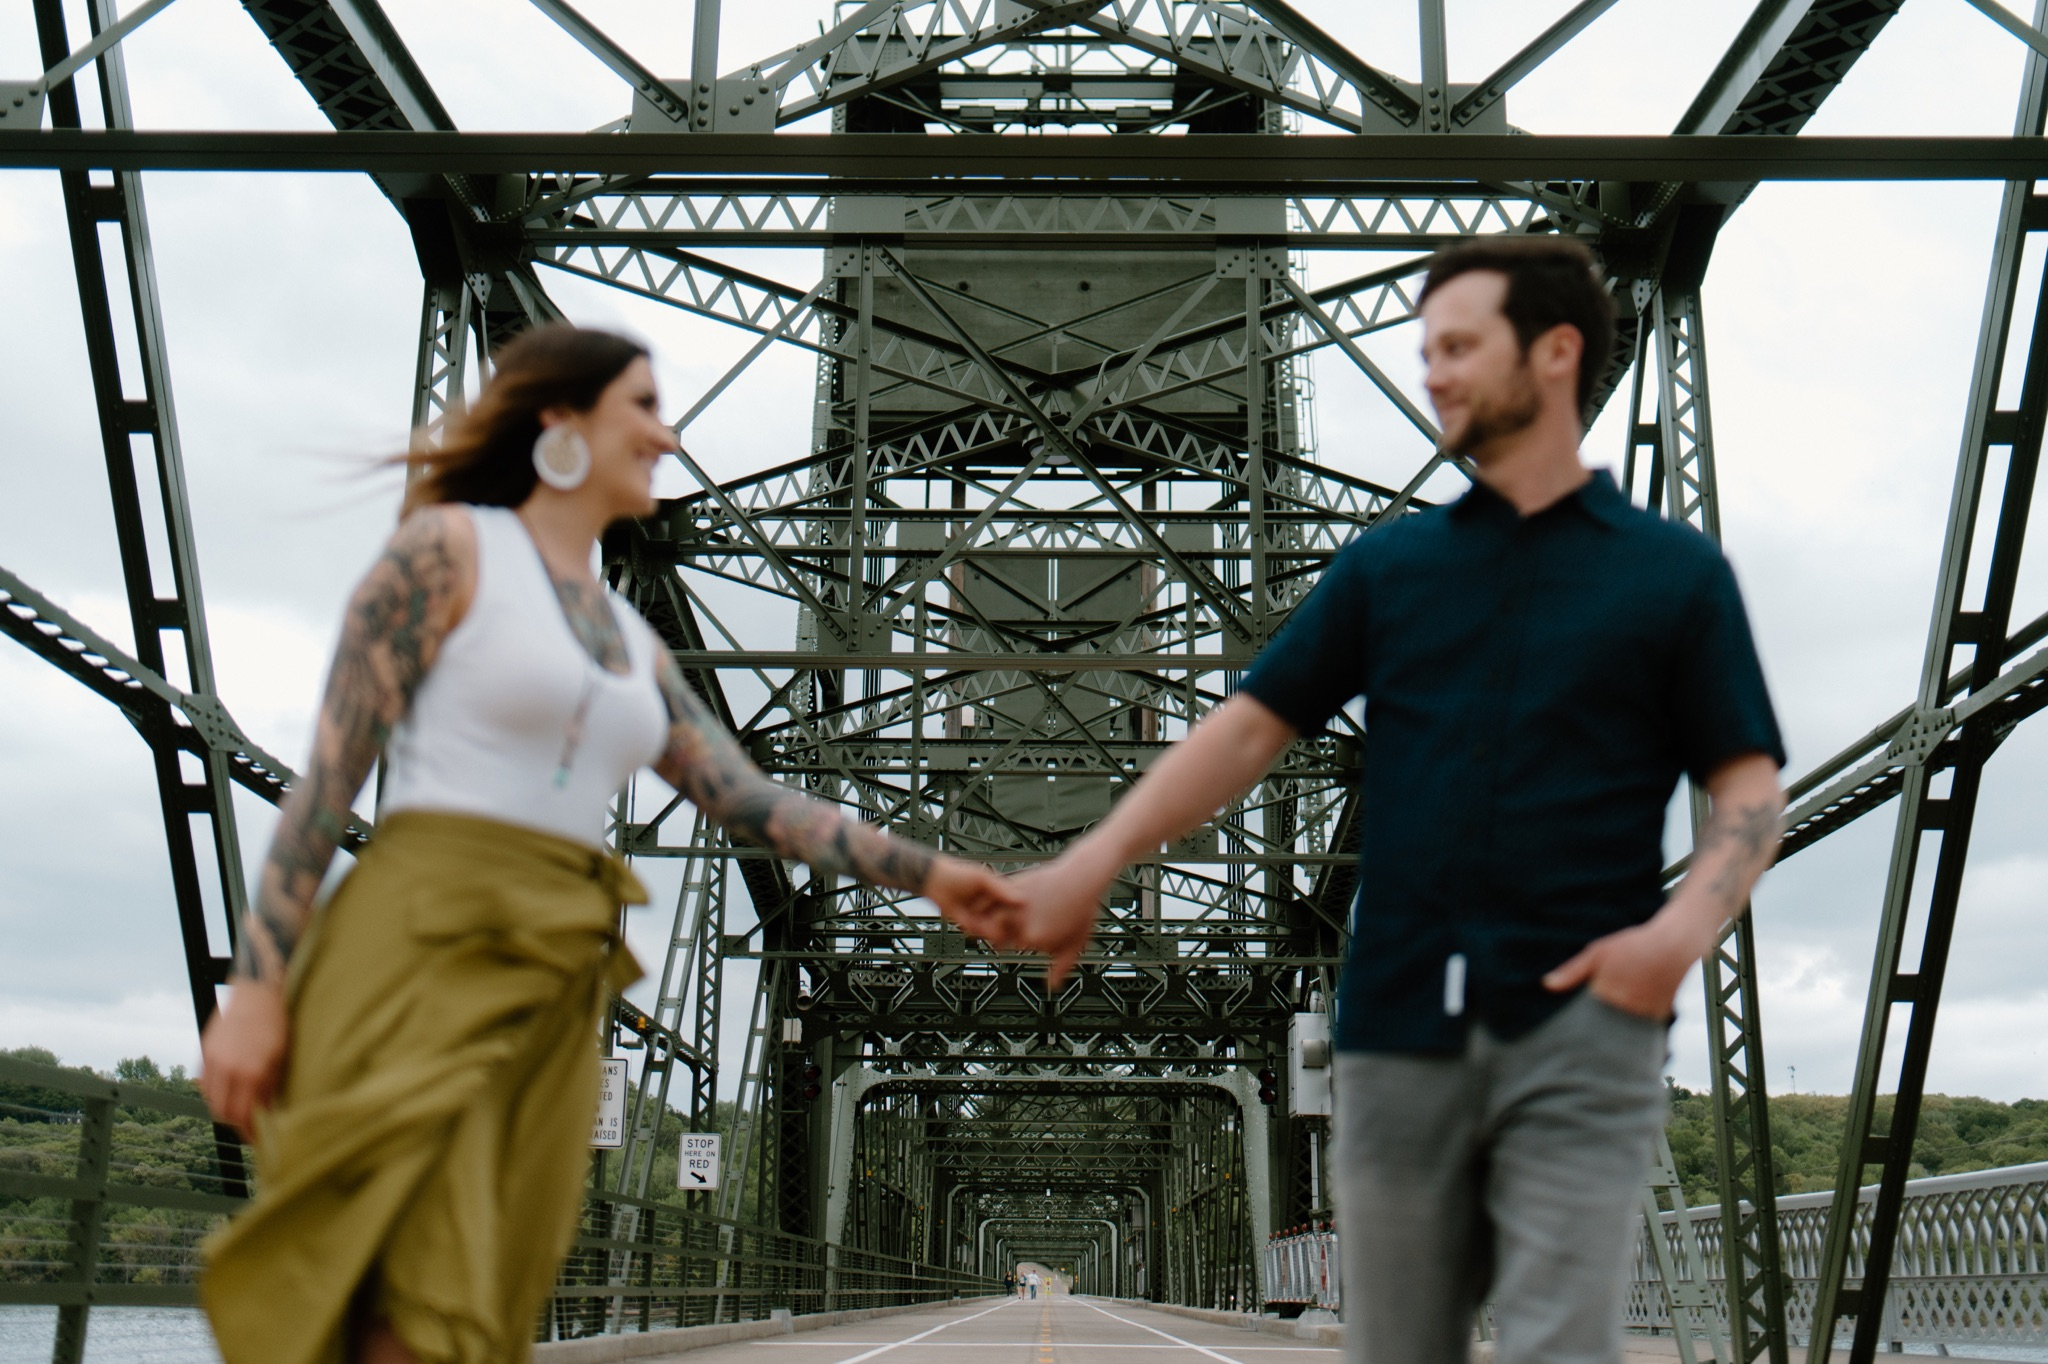 man and woman standing on a bridge holding hands